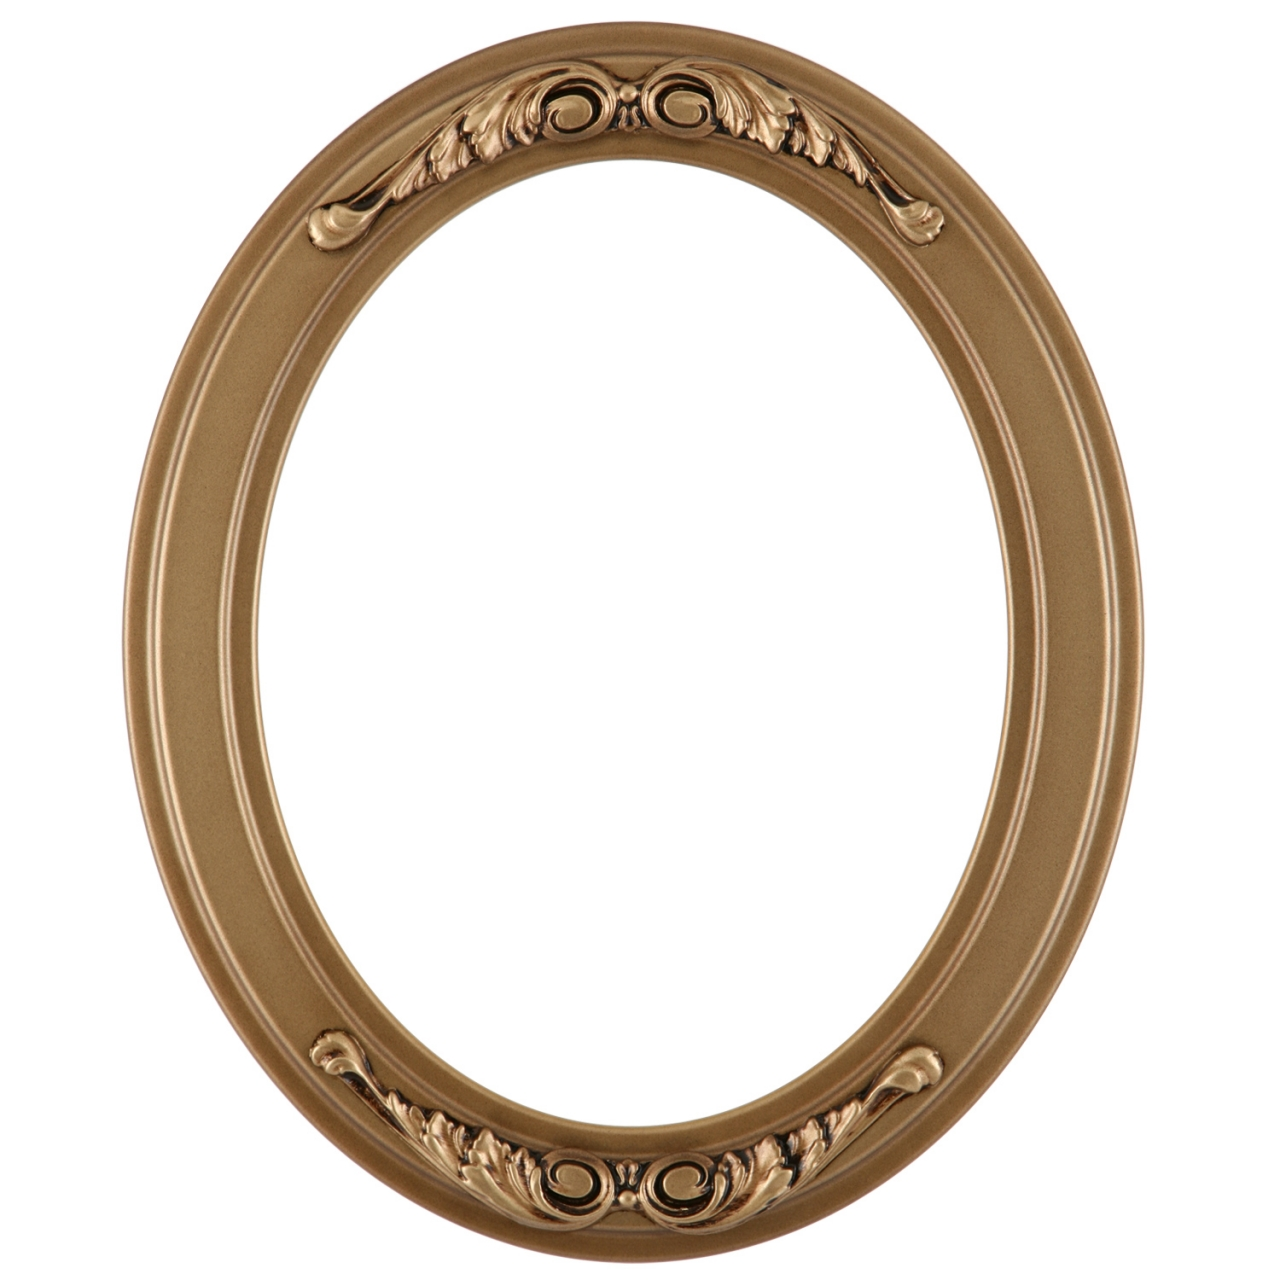 Oval Picture Frame Clip Art Gold | Clipart Panda - Free Clipart Images